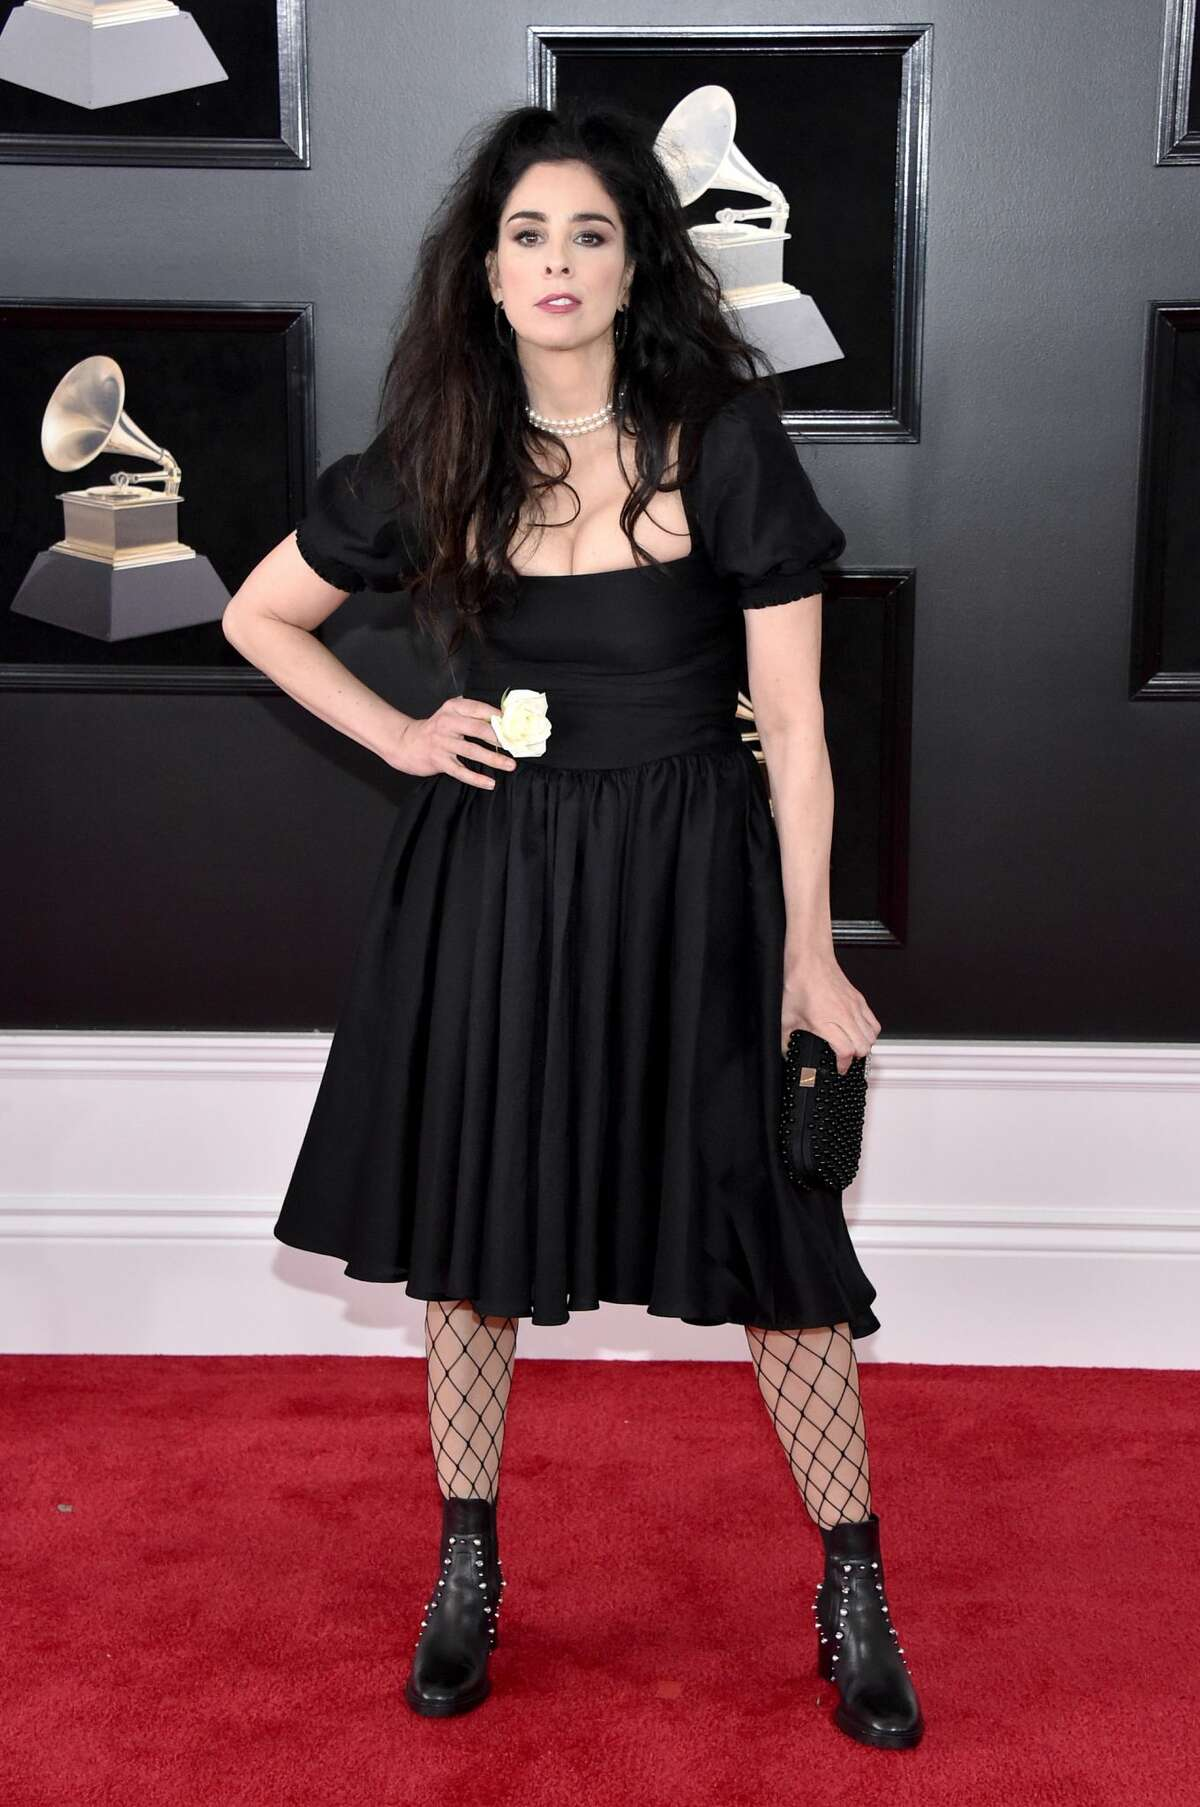 NEW YORK, NY - JANUARY 28: Comedian Sarah Silverman attends the 60th Annual GRAMMY Awards at Madison Square Garden on January 28, 2018 in New York City. (Photo by John Shearer/Getty Images)